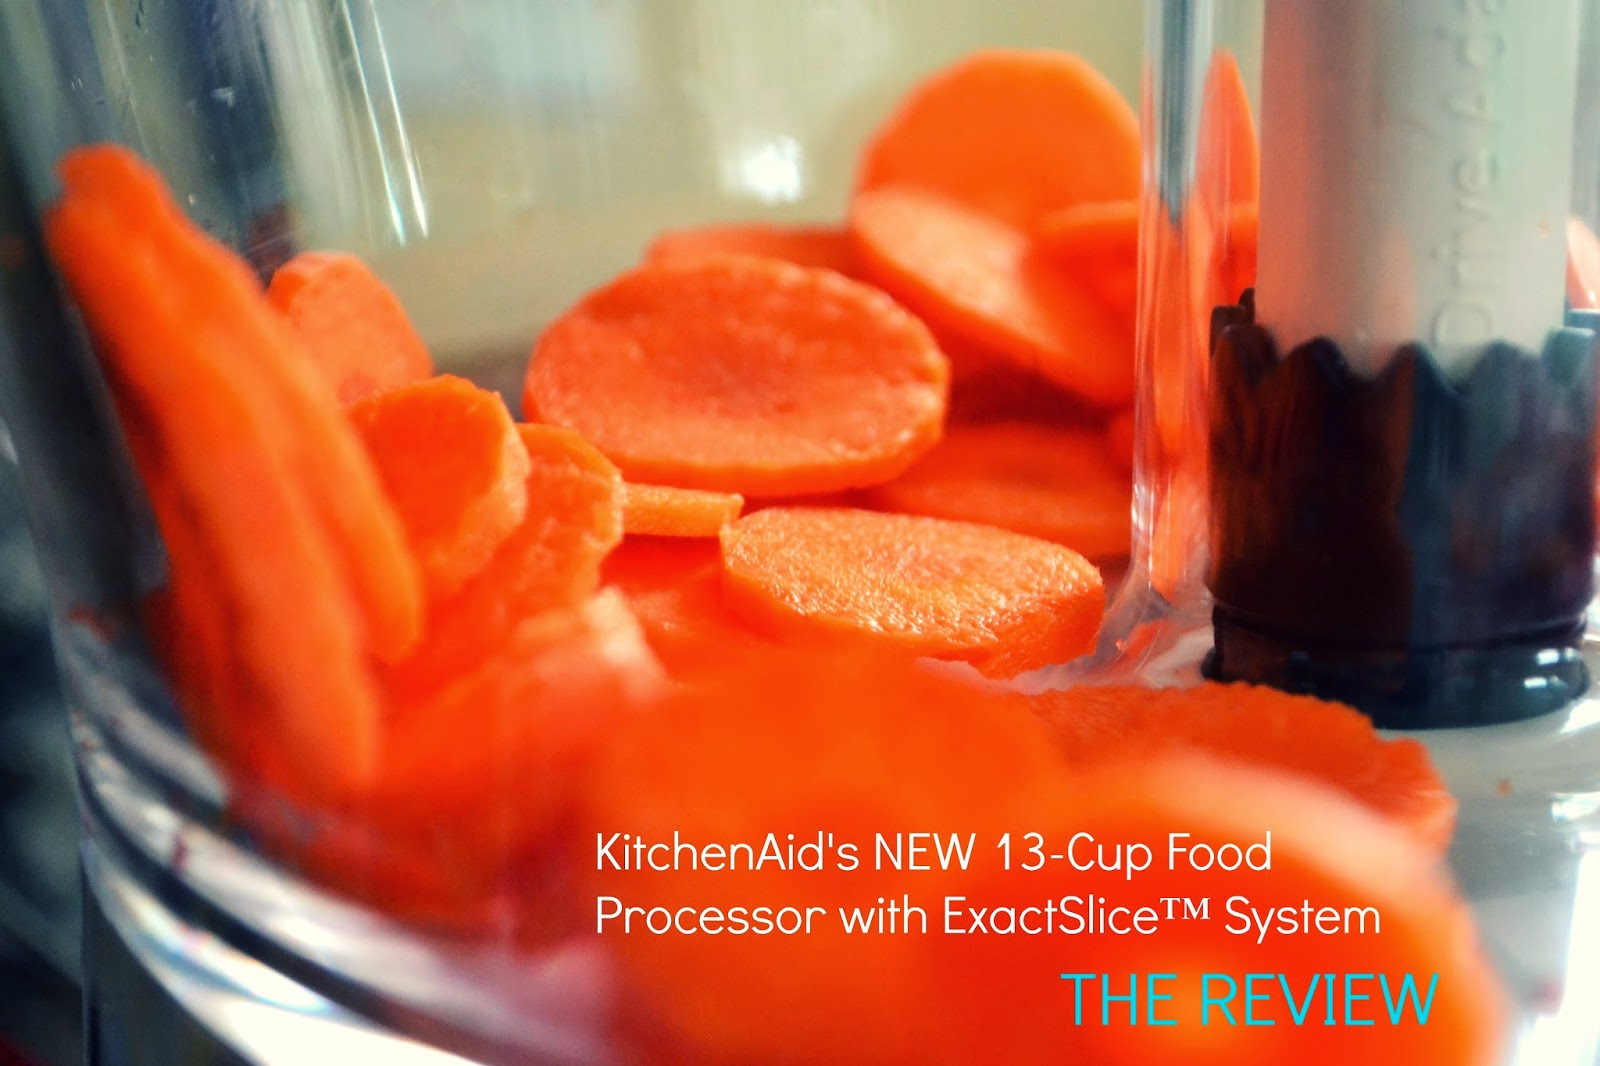 Kitchenaid food processor reviews 7 cup - Kitchenaid 13 Cup Food Processor With Exactslice System